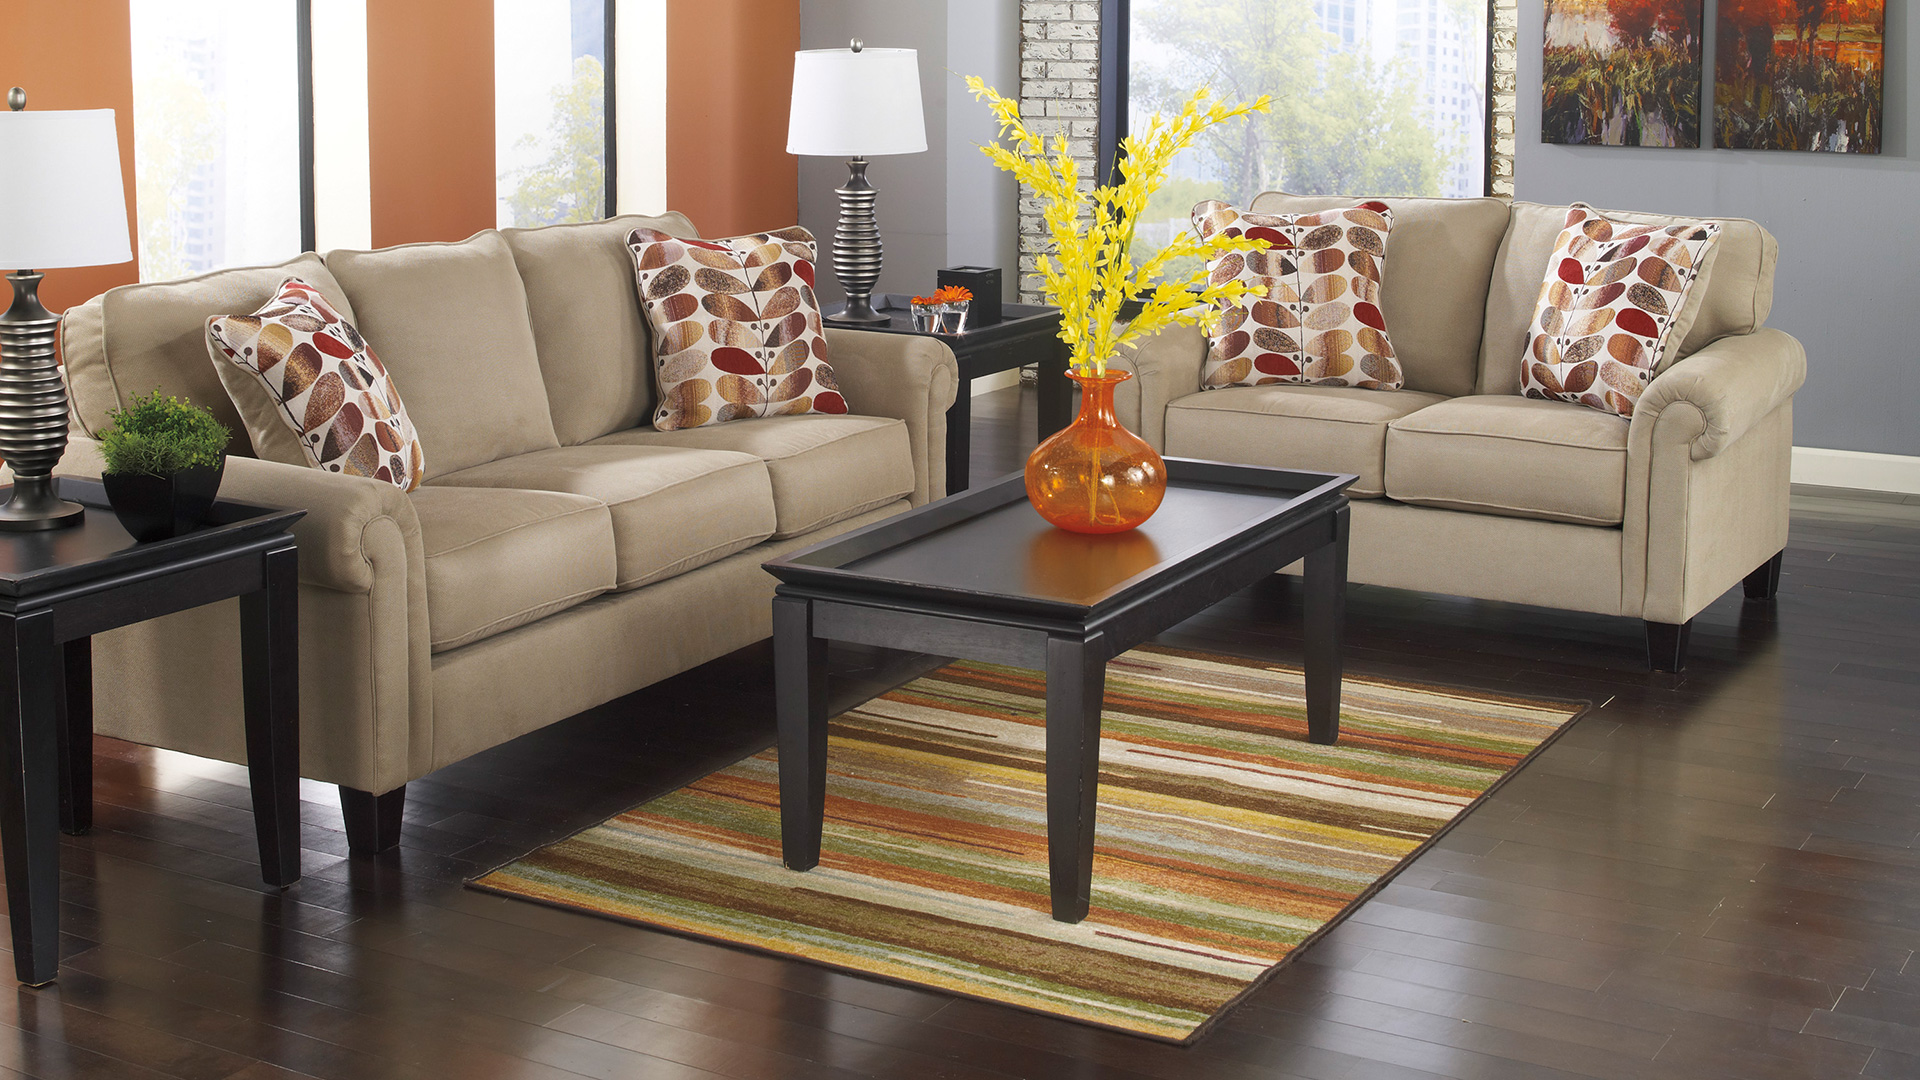 Photos are representative of the type and quality of furniture available in the Economy Package, actual pieces may vary.